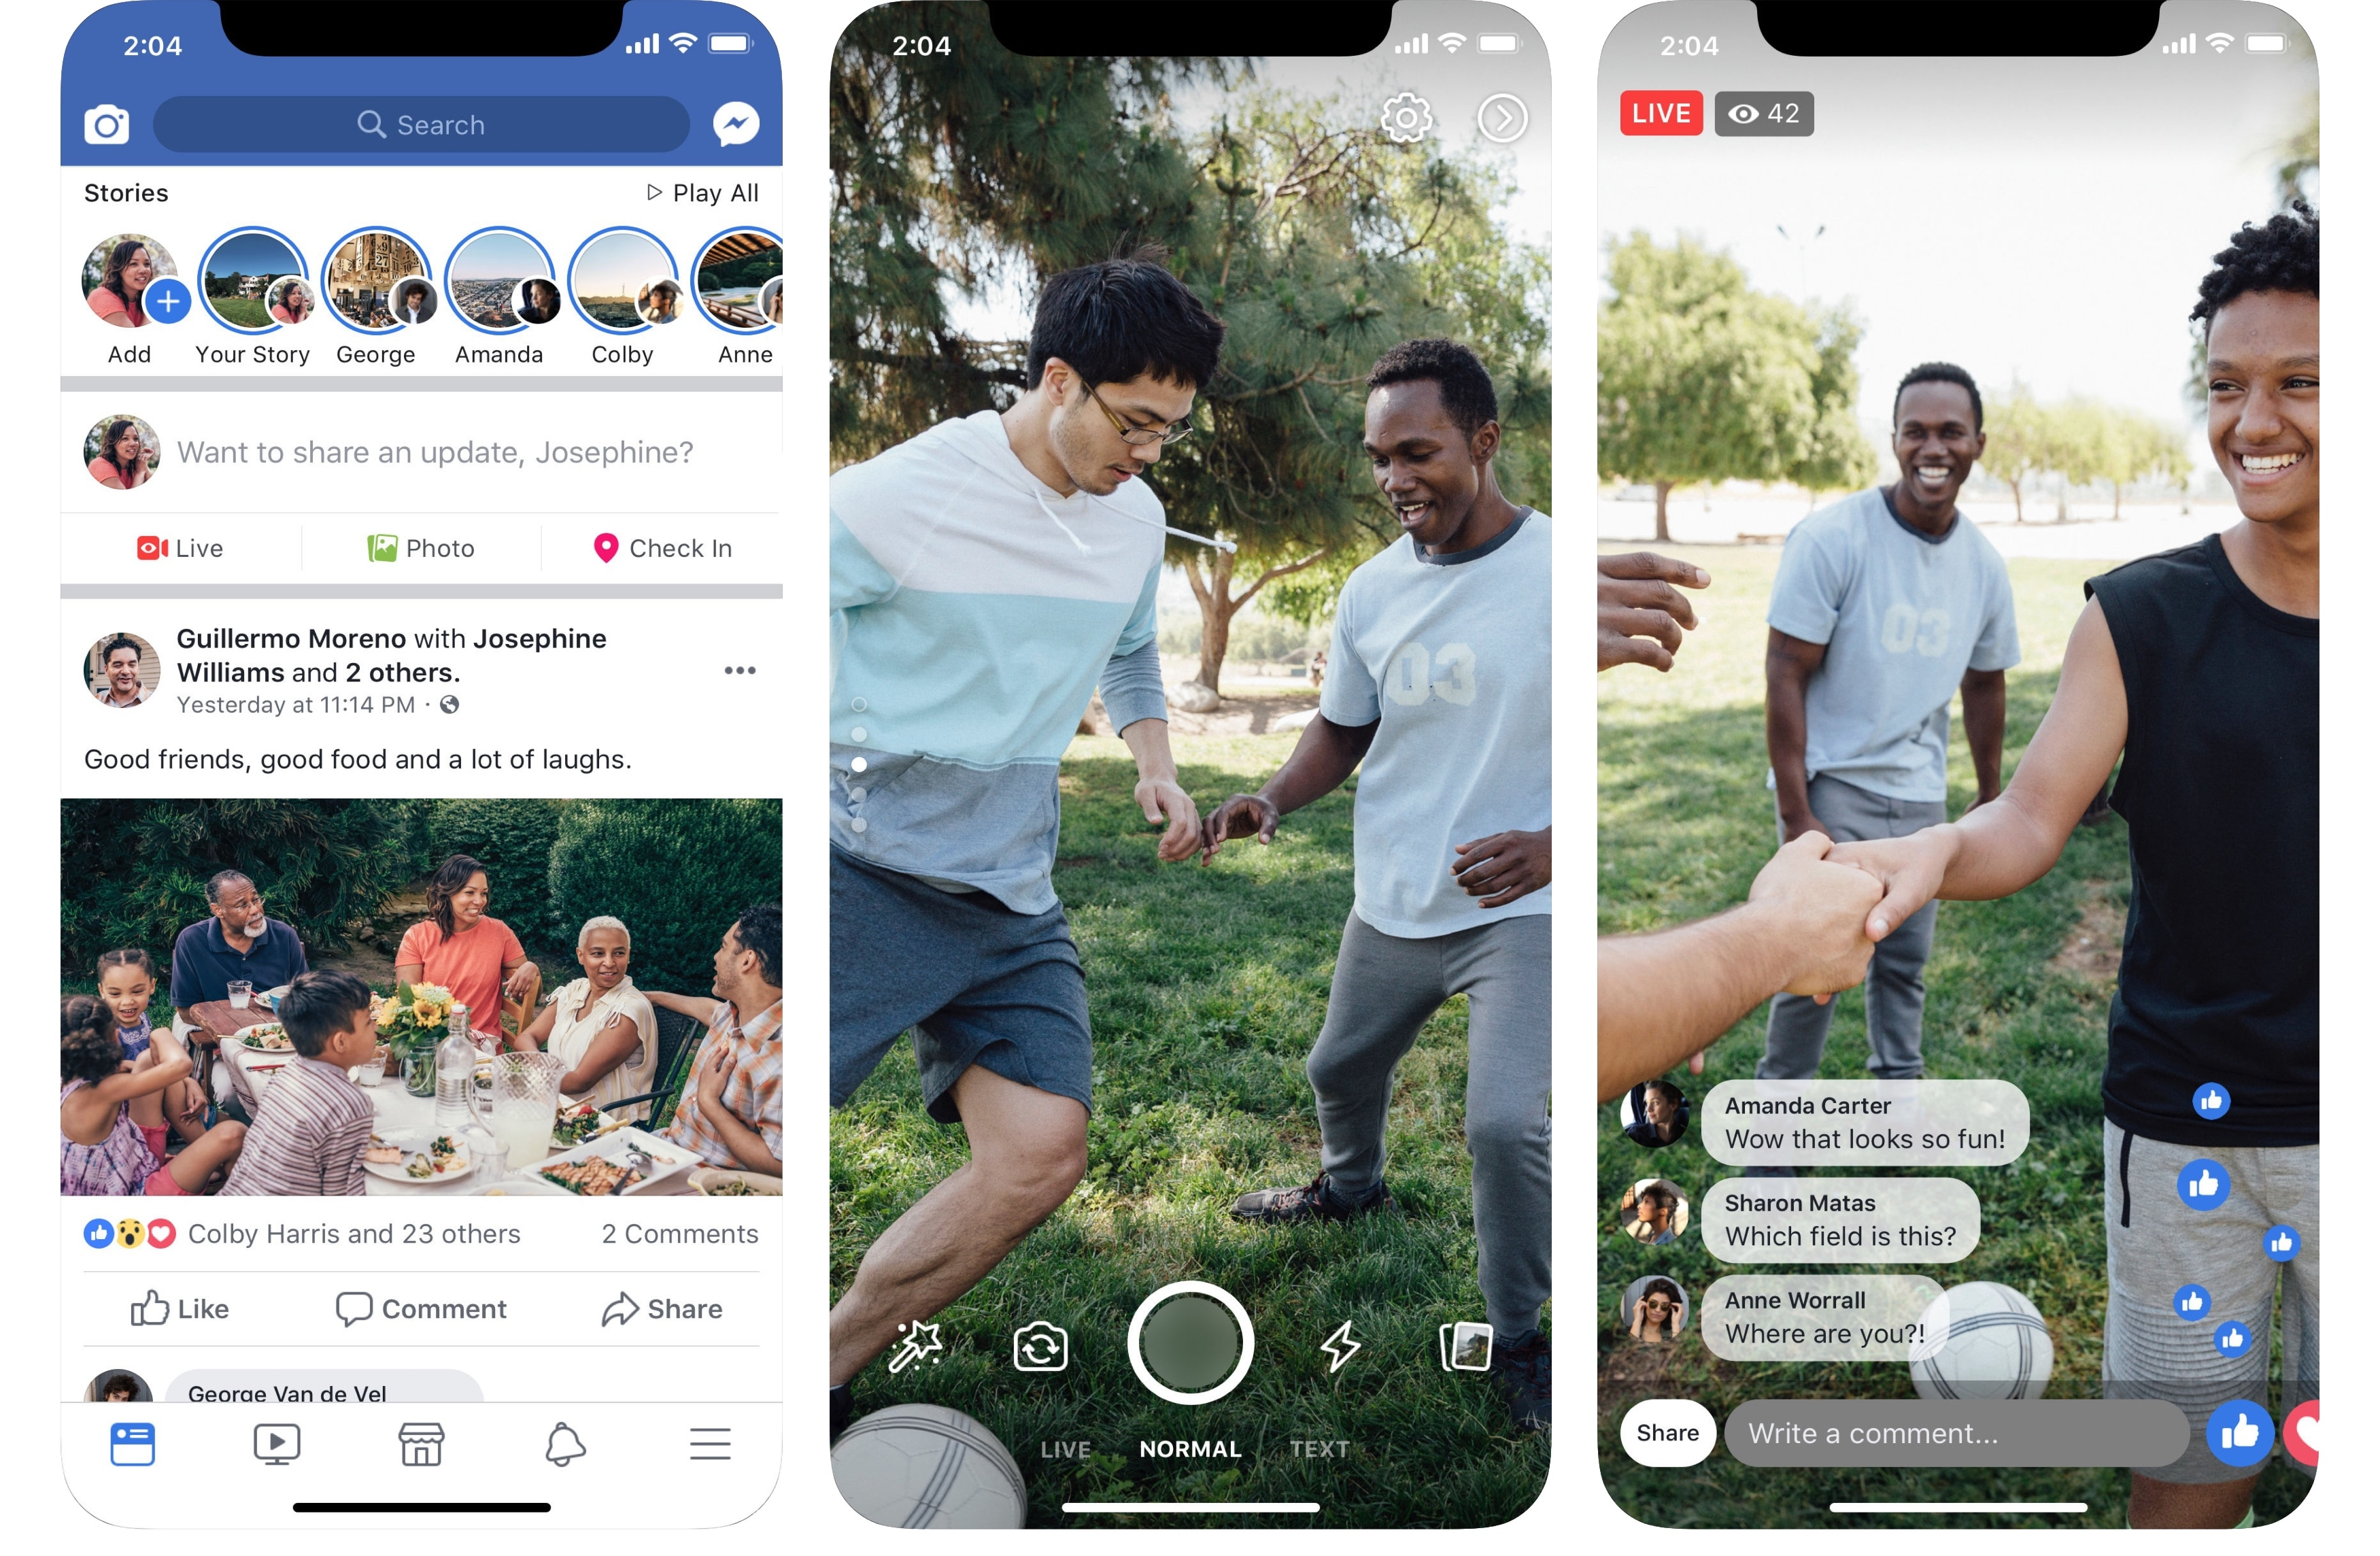 This tweak removes ads from Facebook Stories, in-app videos, and more